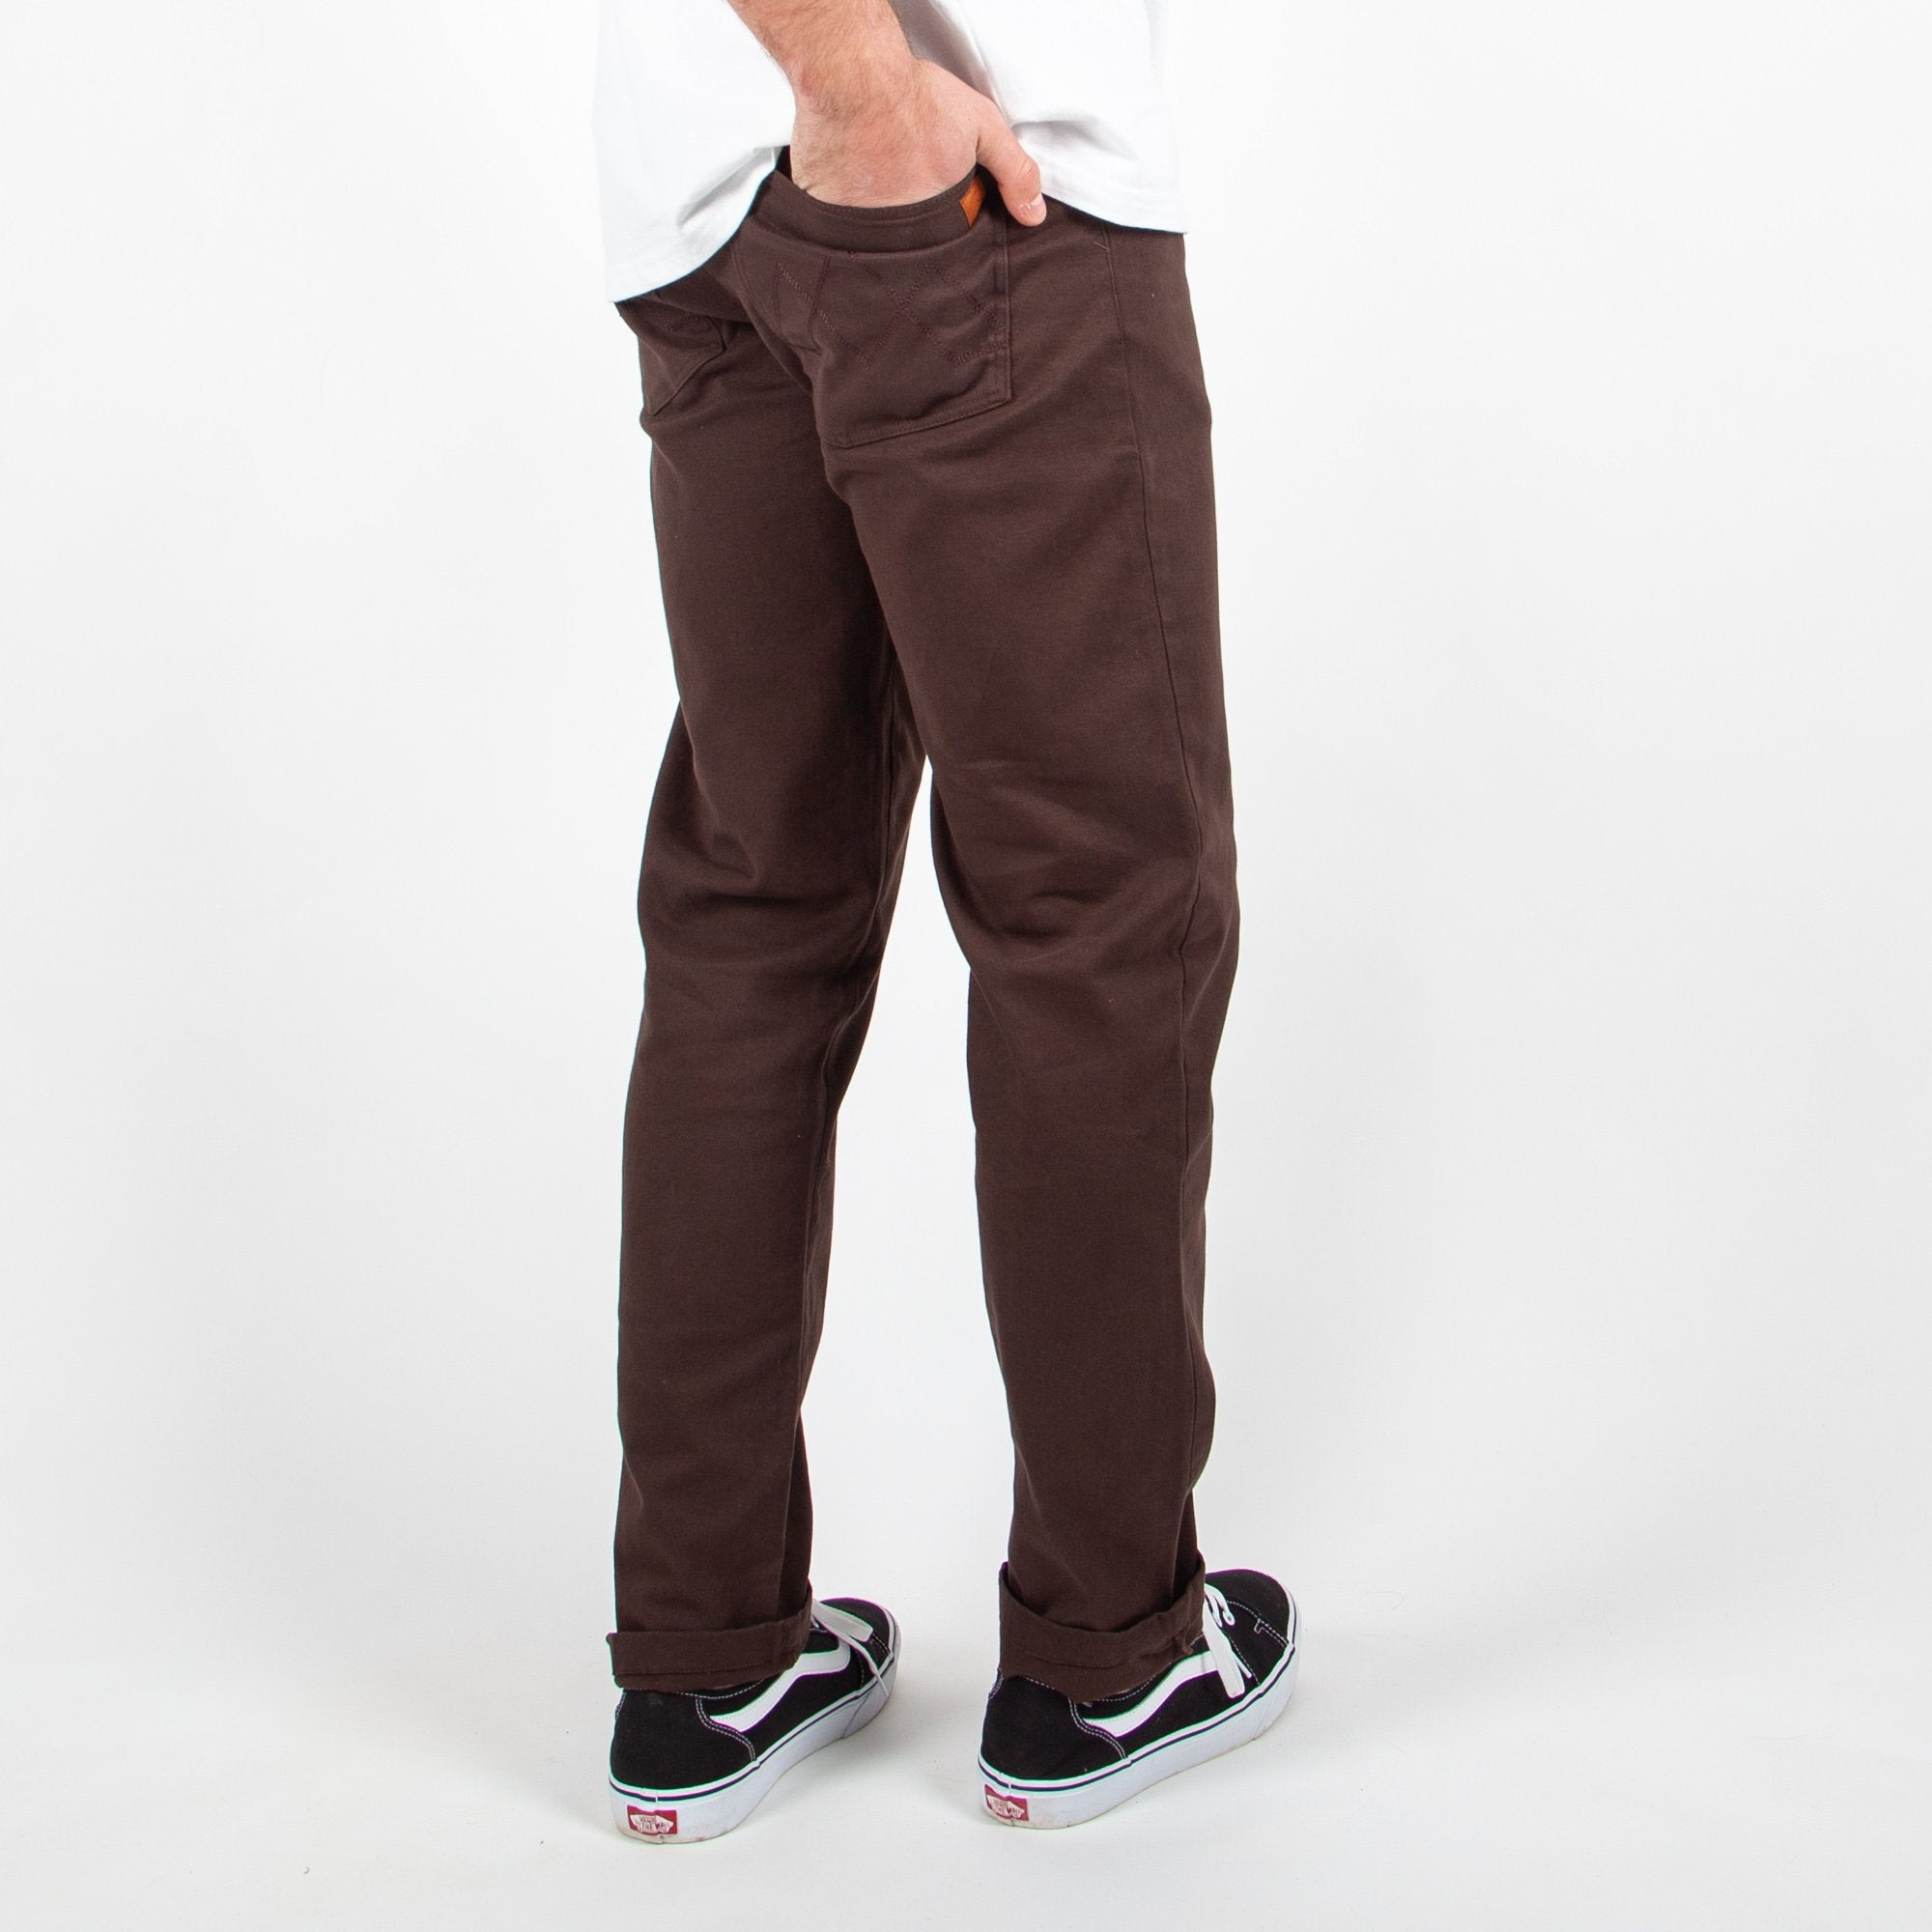 Daily Trouser - Brown image 4